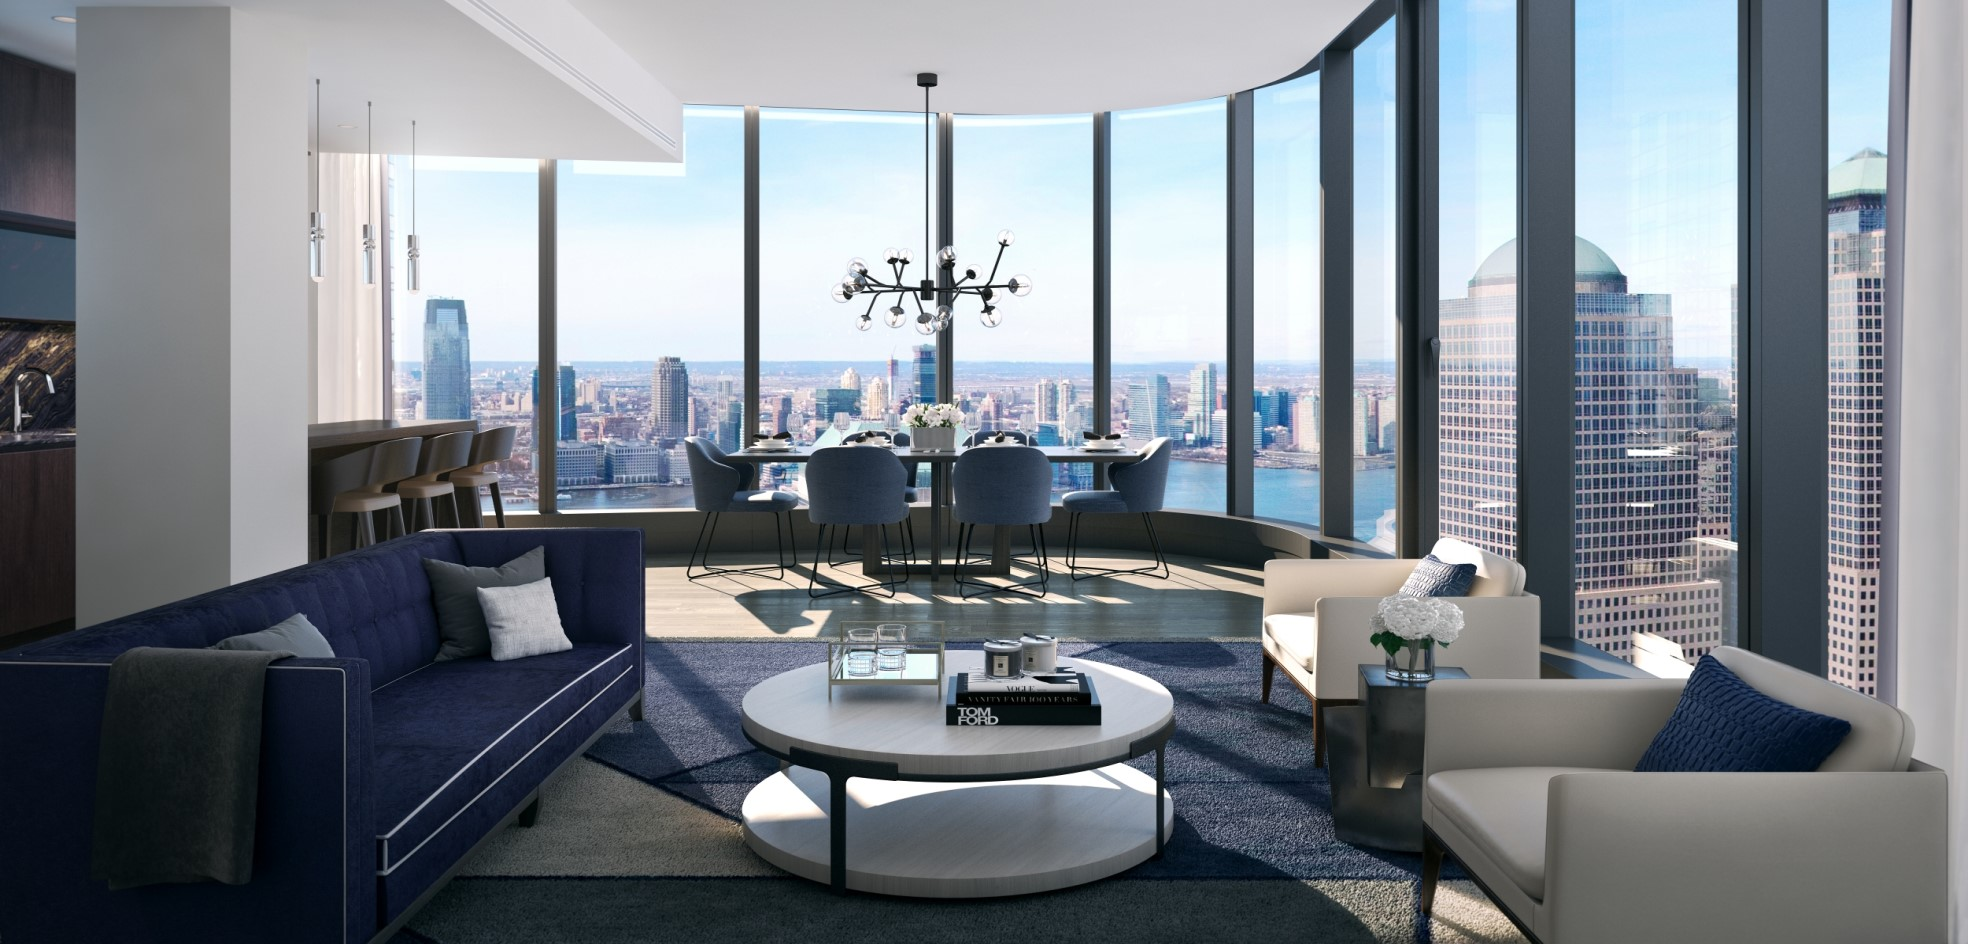 ROBUST U.S. ECONOMY – PRIME TIME FOR REAL ESTATE INVESTMENT  125 Greenwich – Residential skyscraper in Manhattan's financial district